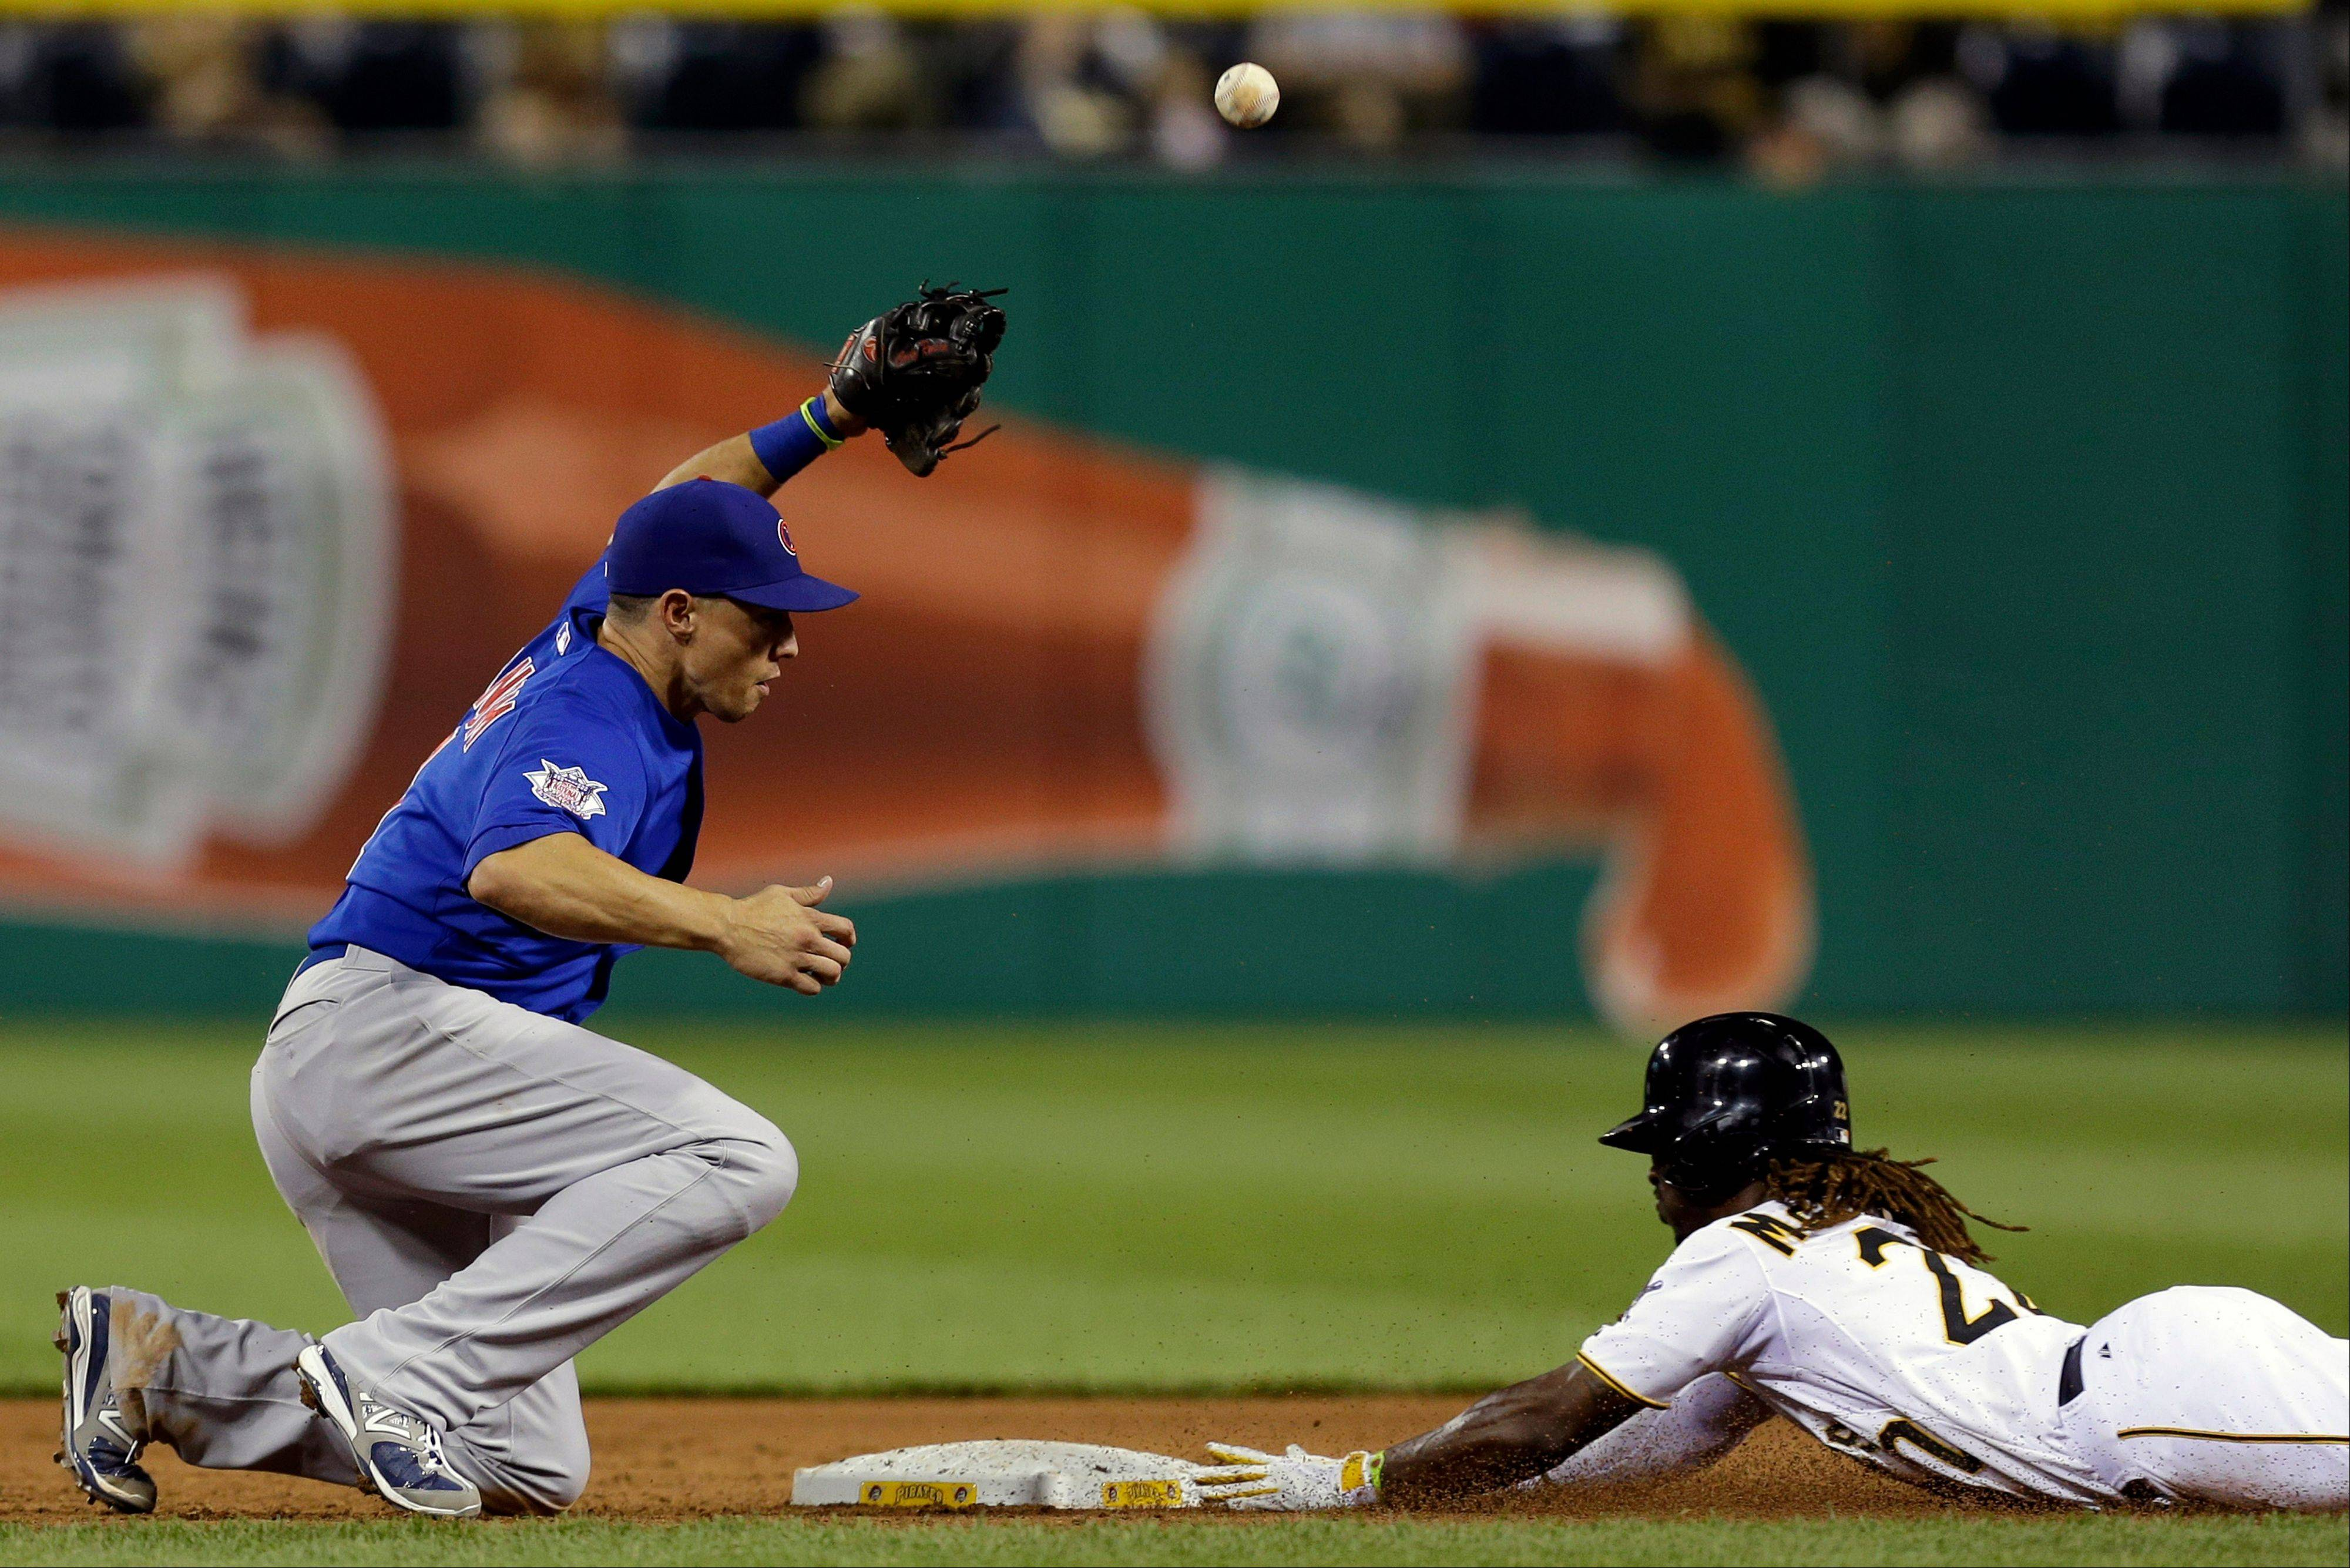 Pittsburgh Pirates� Andrew McCutchen, right, steals second as the throw from Chicago Cubs catcher Welington Castillo gets away from Cubs� Cody Ransom, left, during the Wednesday�s game in Pittsburgh. The Cubs lost 1-0.